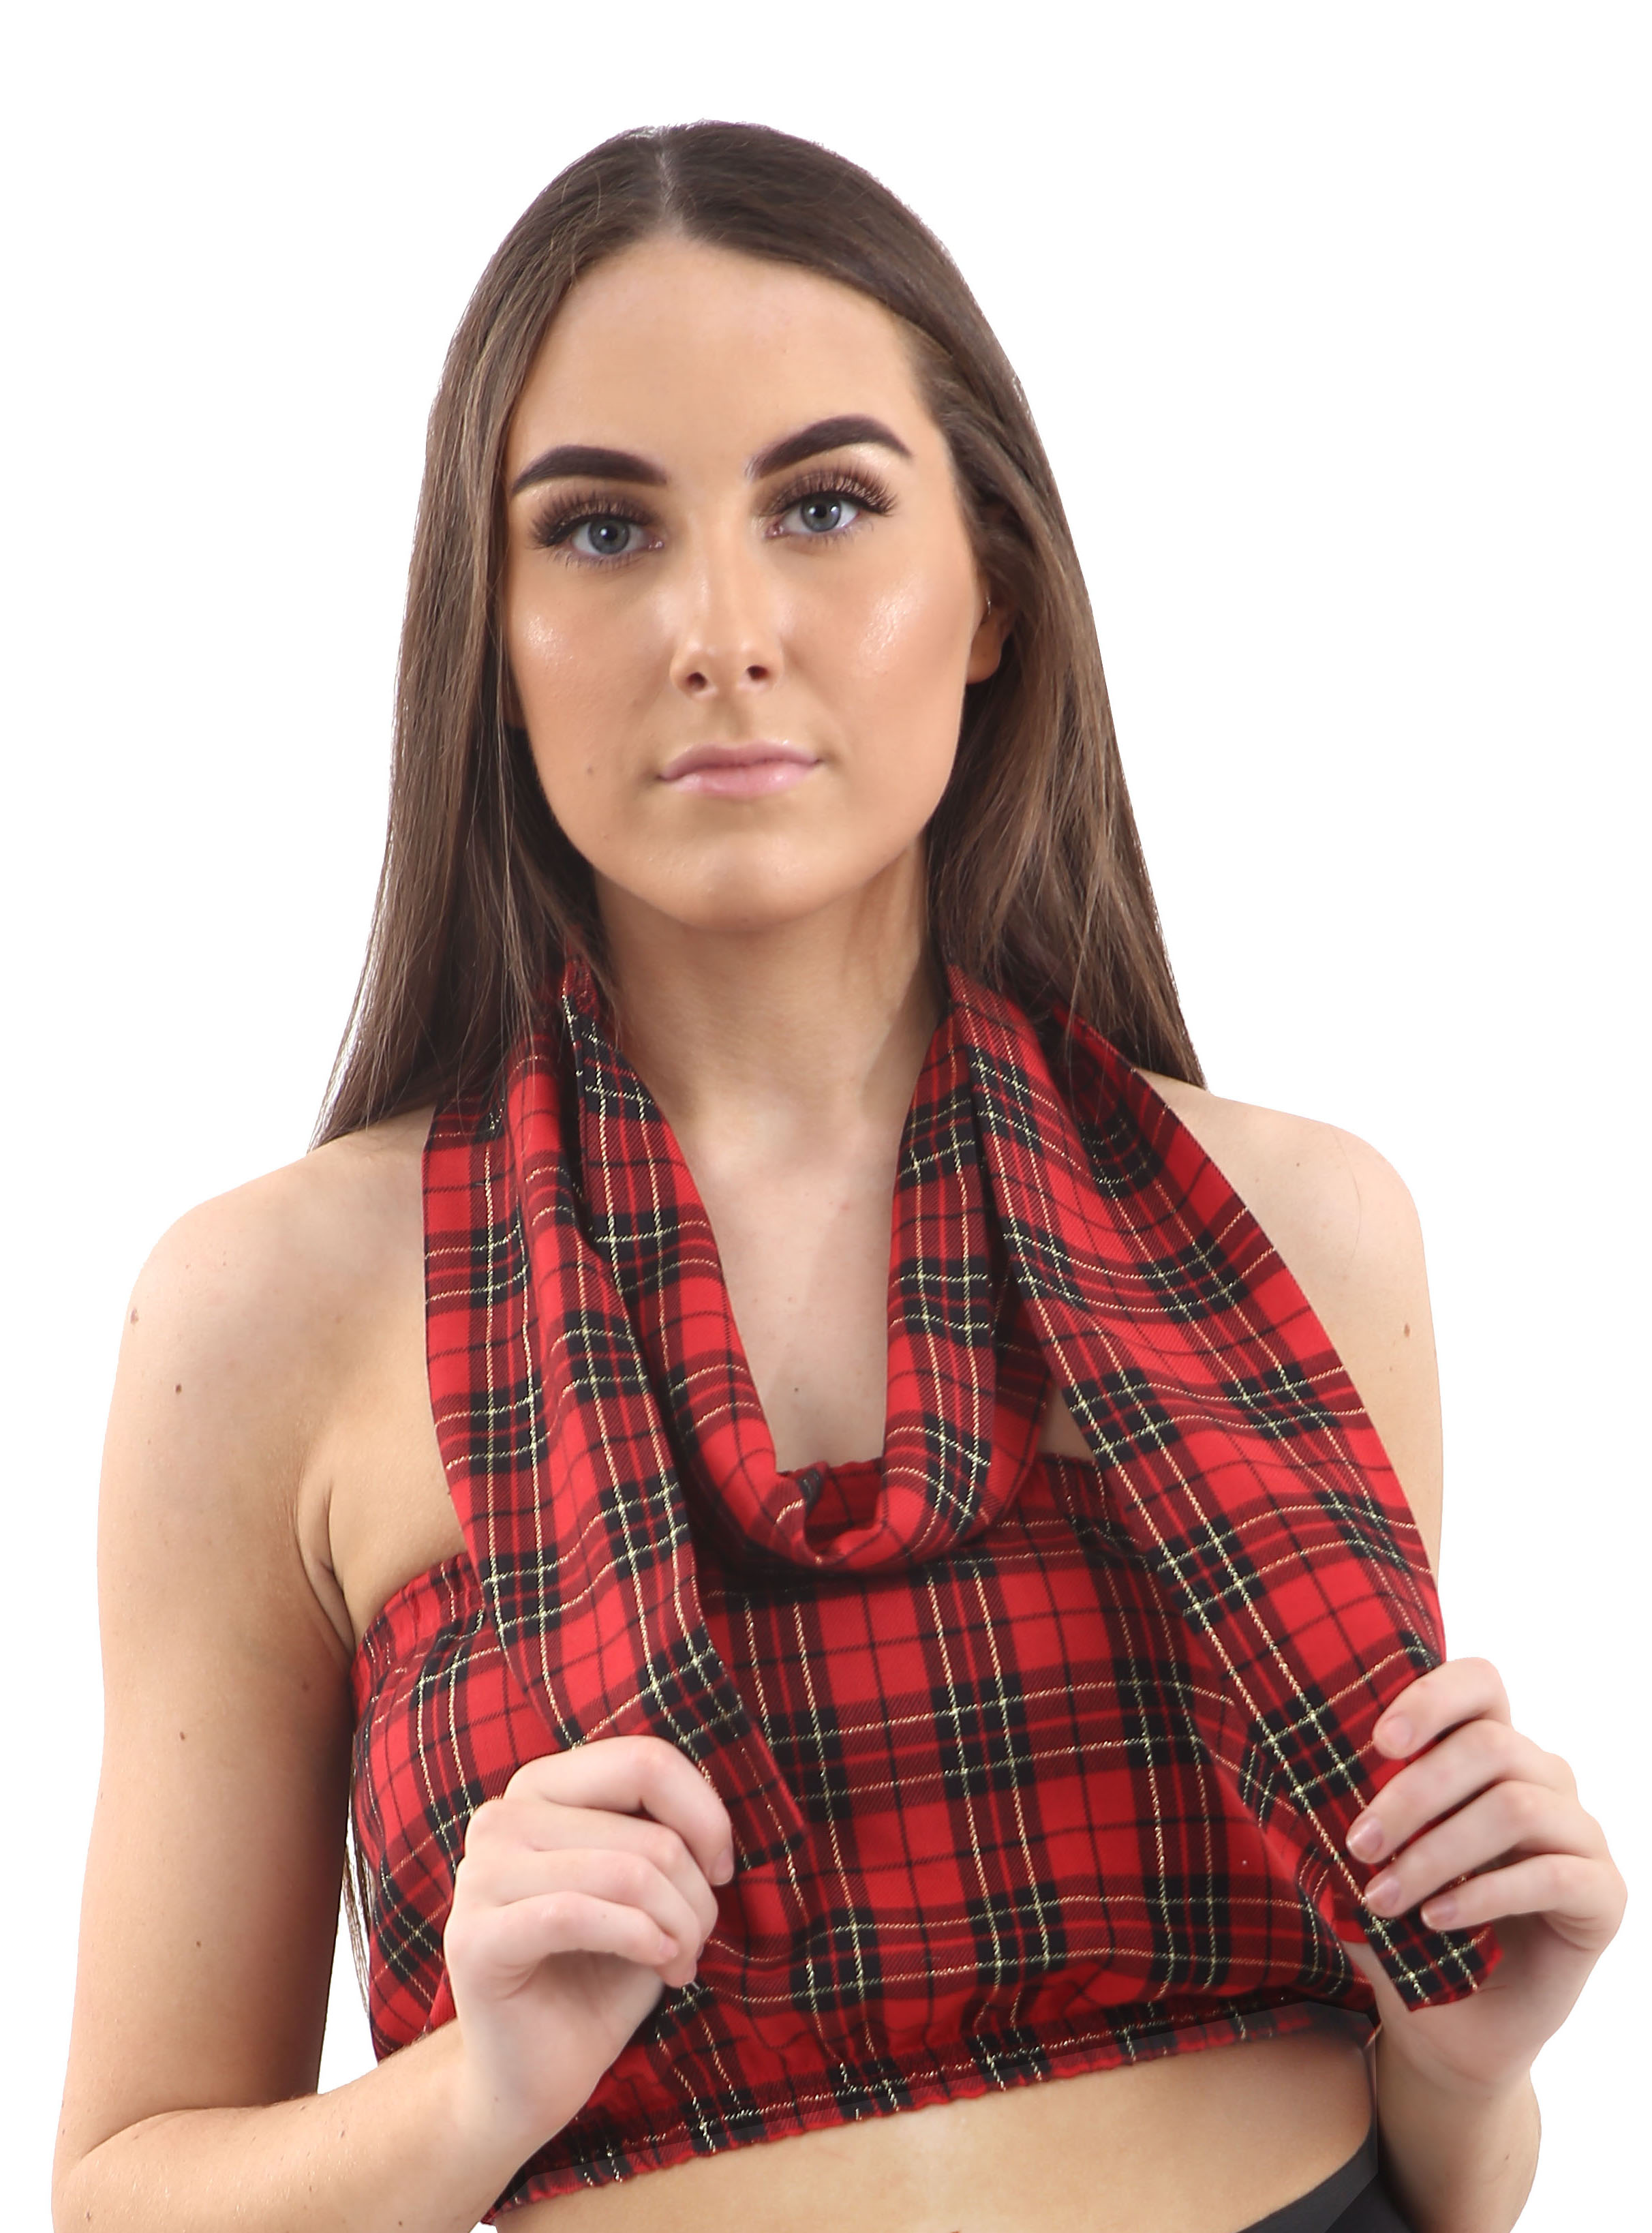 Crazy Chick Red Tartan Boob Tube